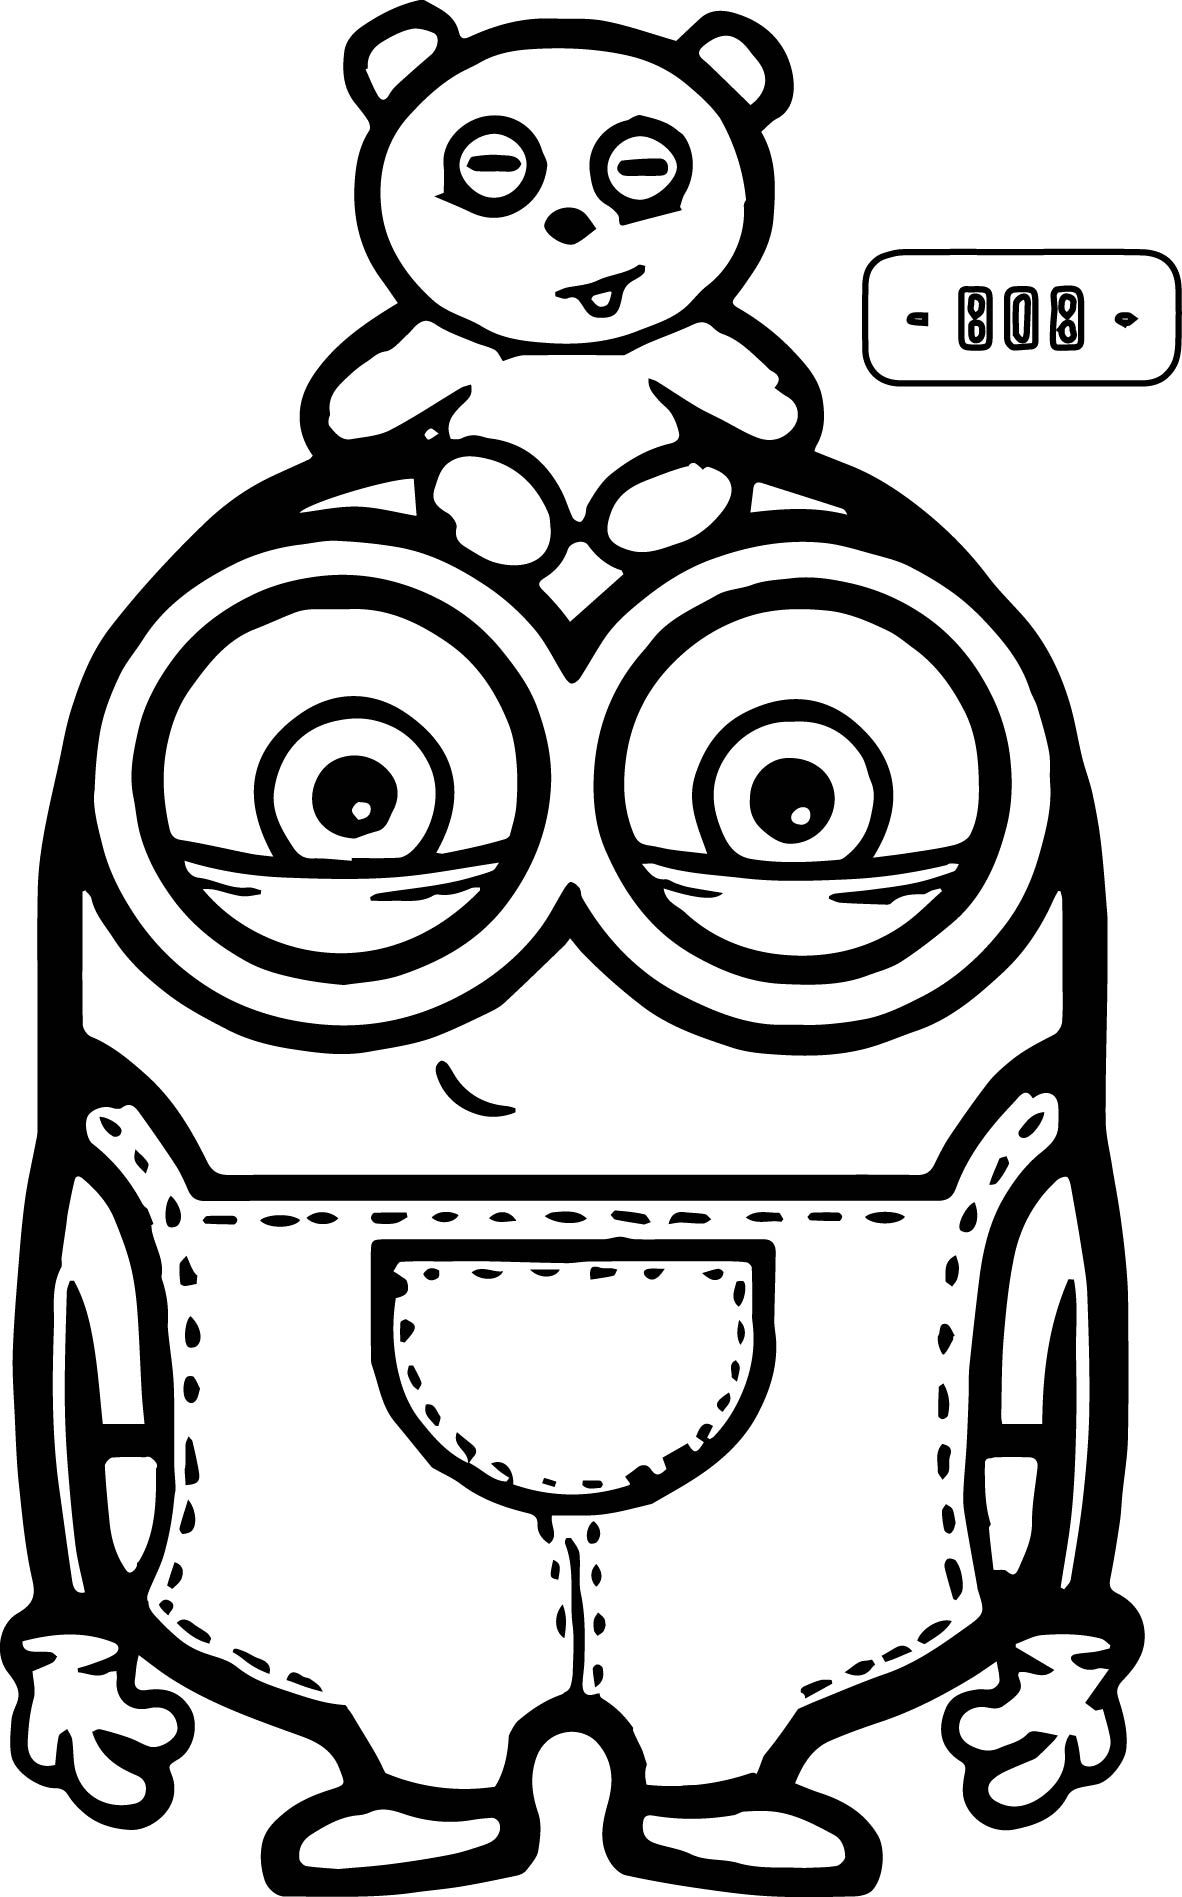 coloring pages minions angen - photo#6